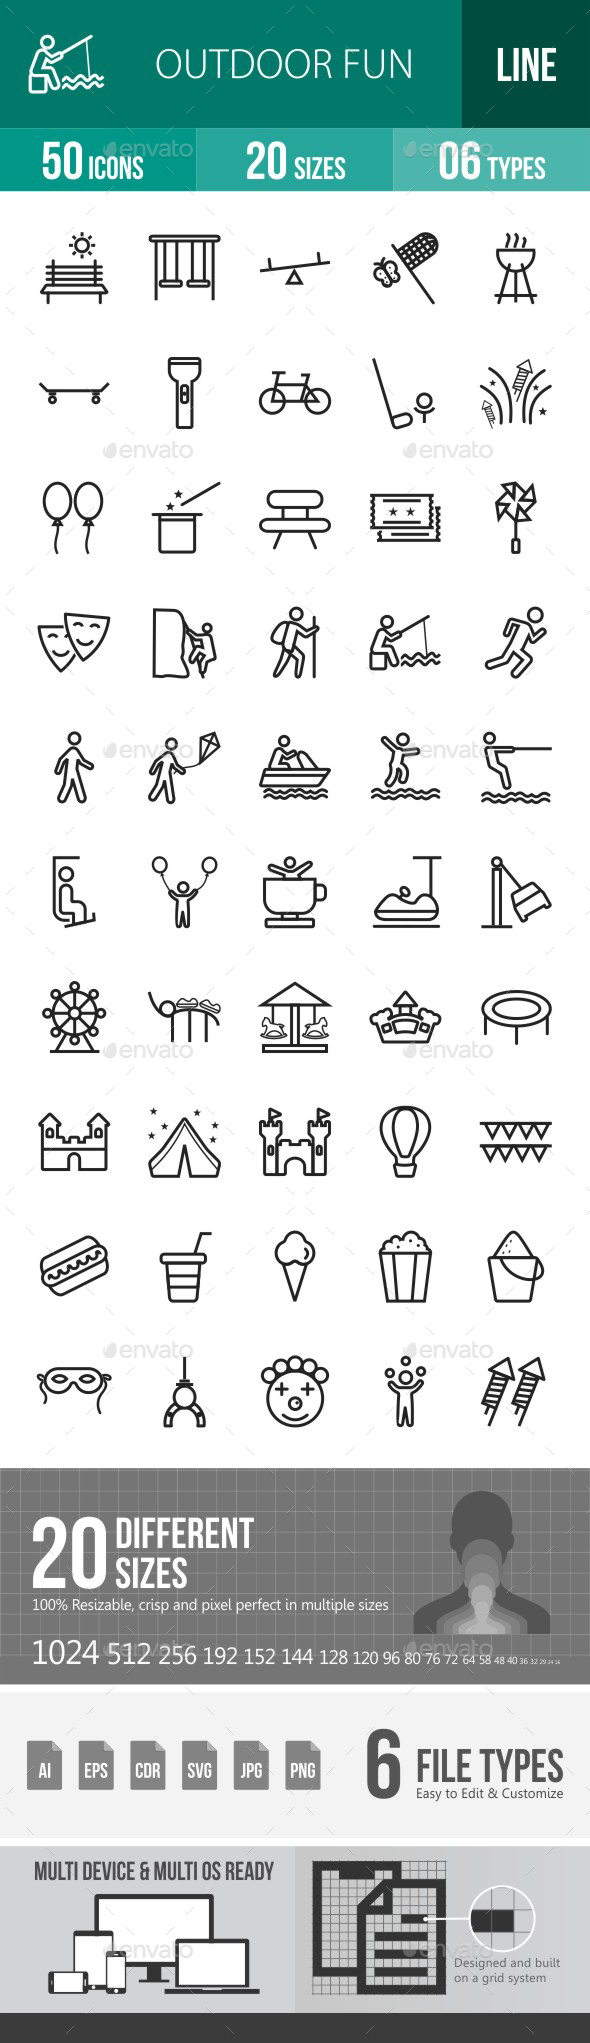 Outdoor Fun Line Icons - Icons